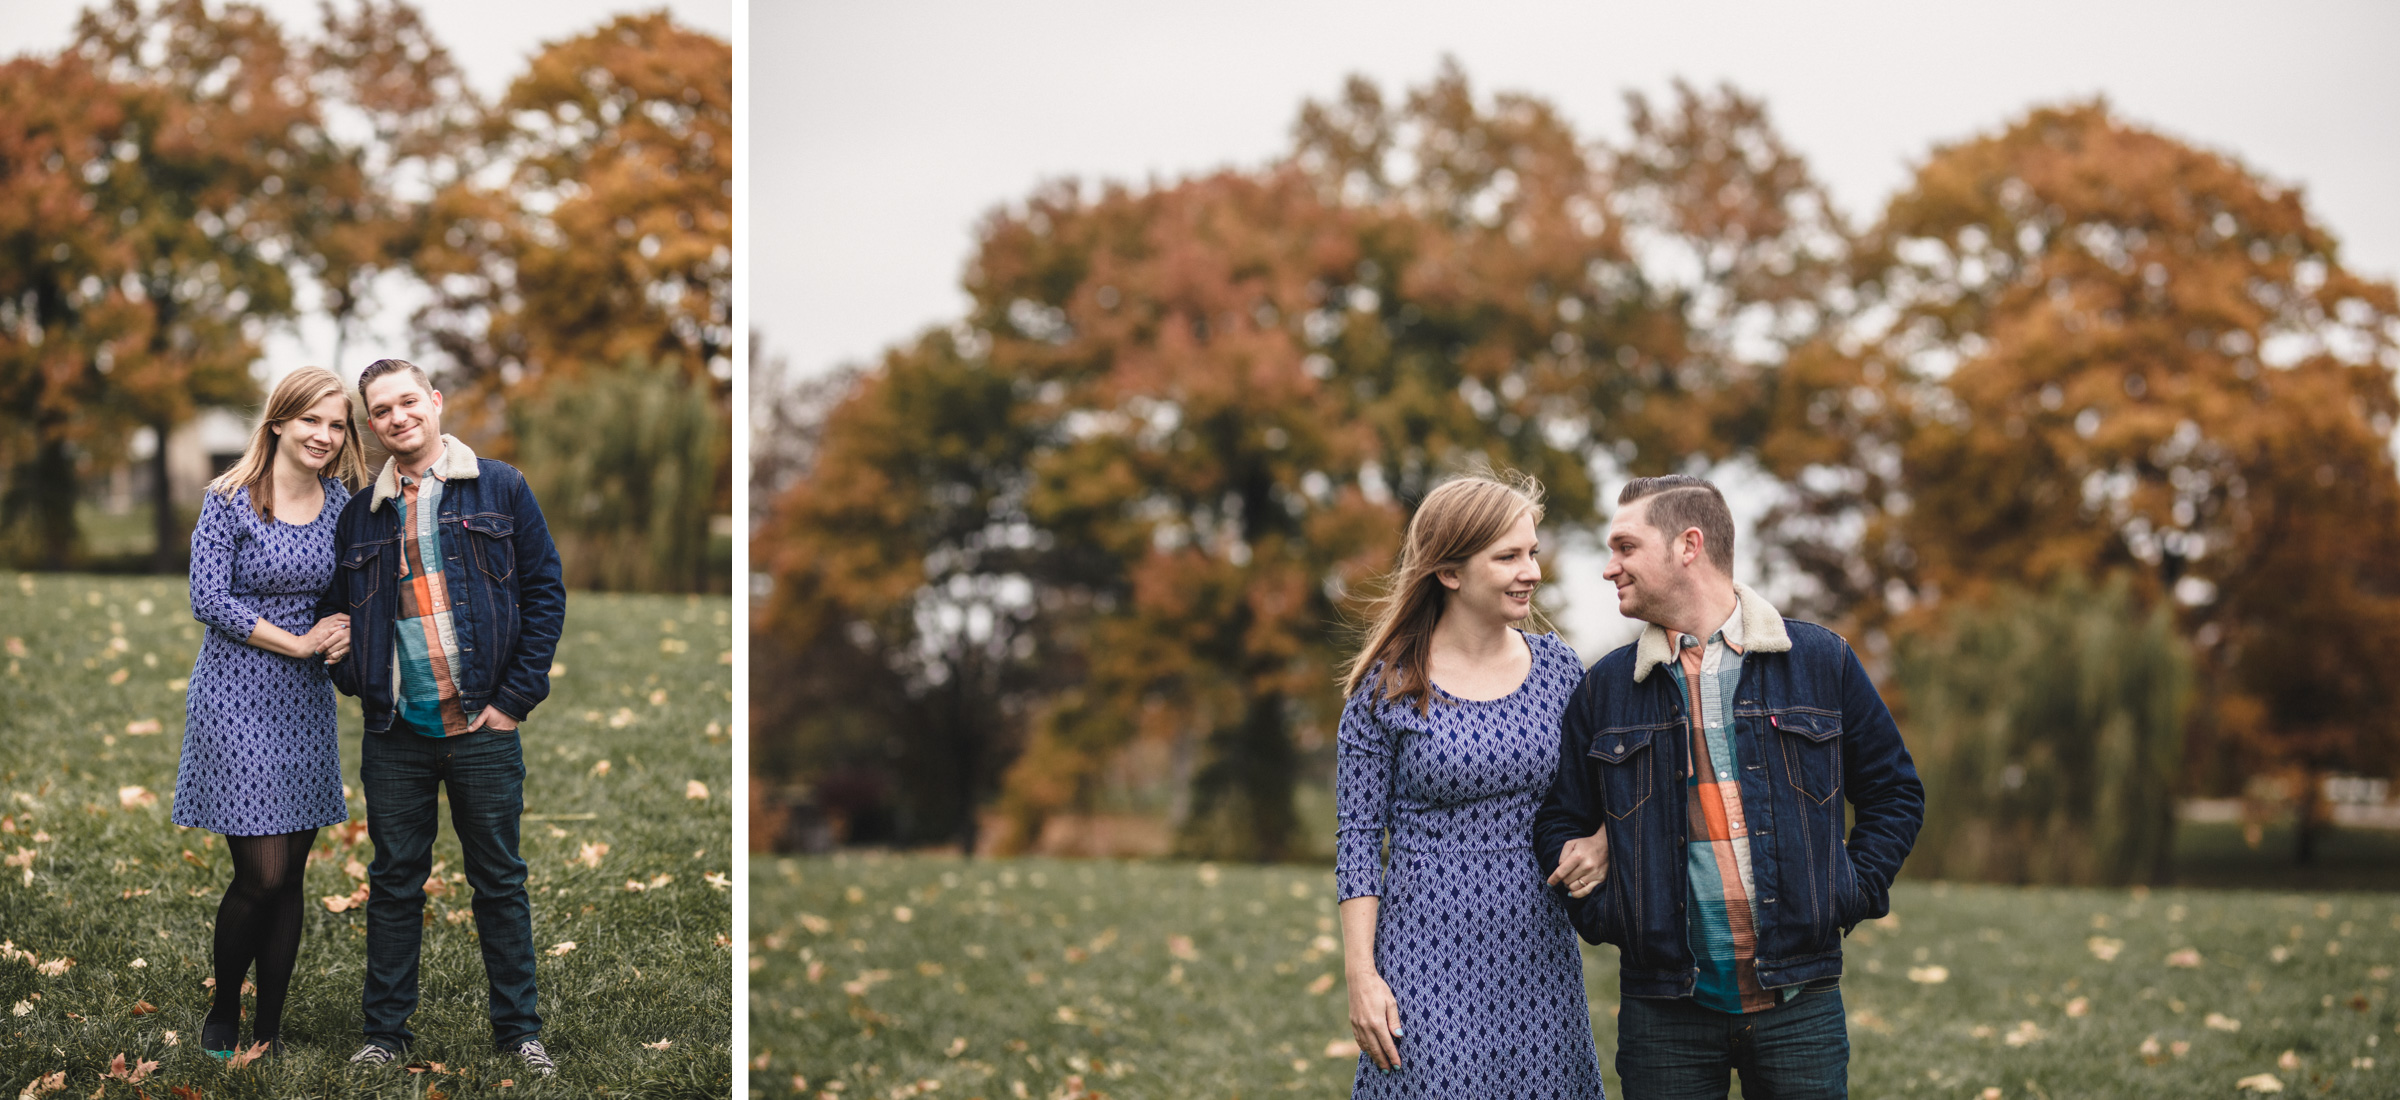 Kate_Bobby__Engagement_Session_Kansas_City_In_Home_Session_Autumn_Kelsey_Diane_Photography_13.jpg